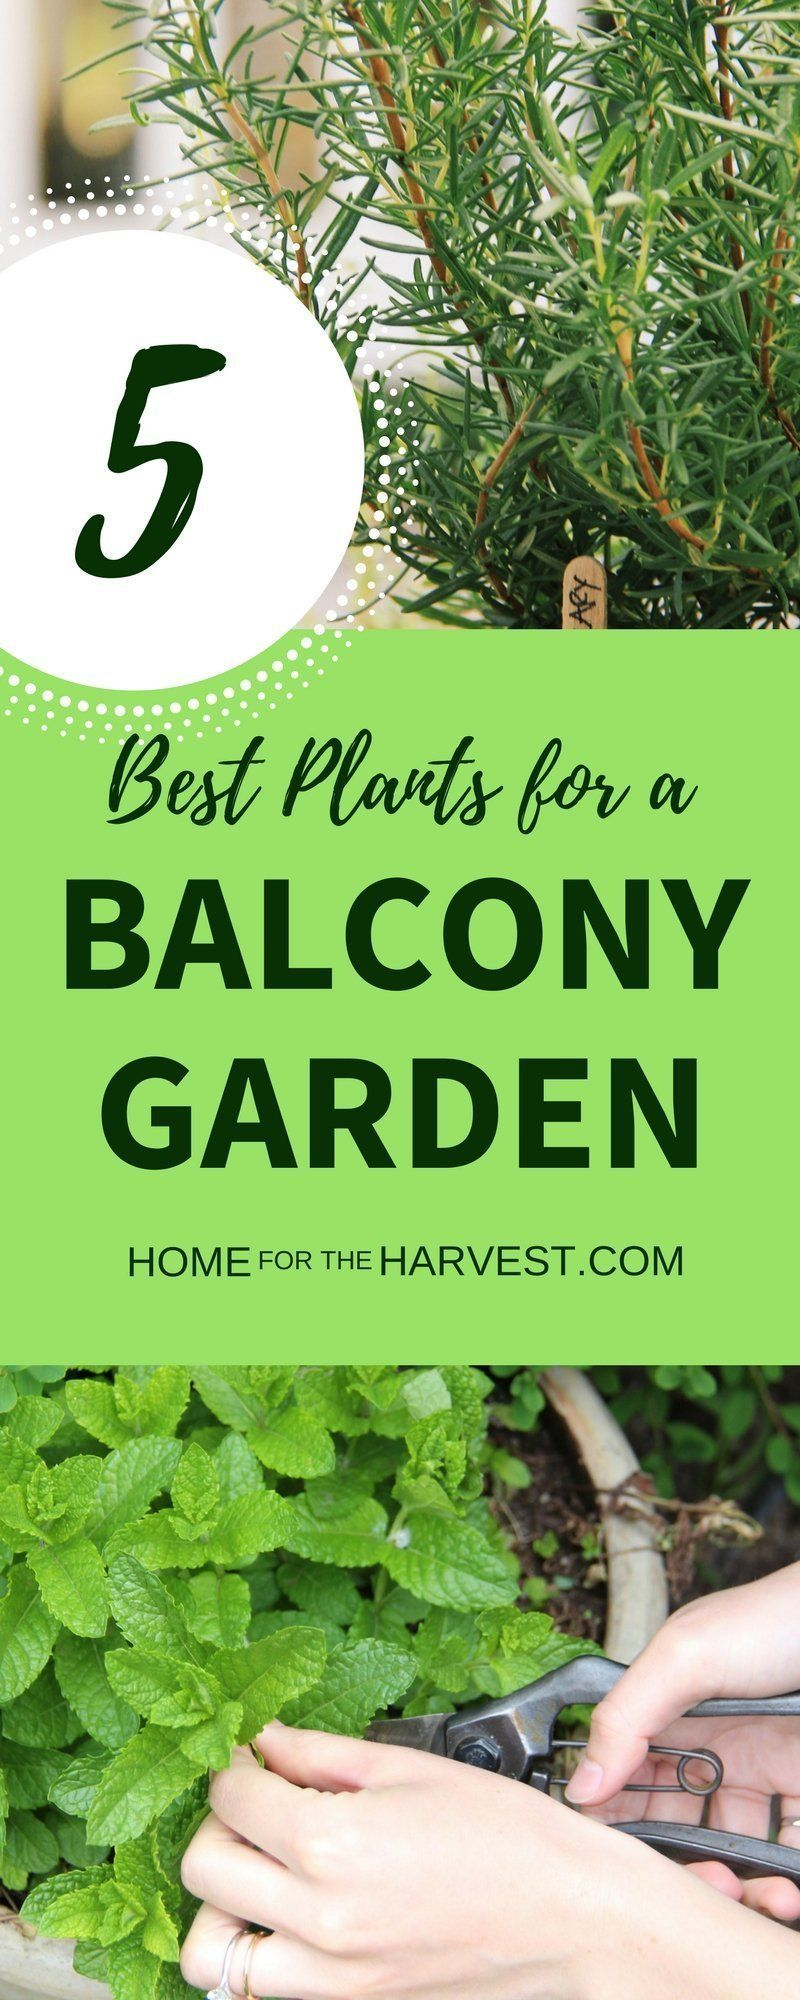 The Top 5 Plants for a Balcony Vegetable Garden is part of Balcony garden, Balcony plants, Apartment balcony garden, Urban gardening balcony, Garden guide, Apartment garden - Your outdoor space can be the perfect place for a balcony vegetable garden! Many veggie and culinary herb plants thrive when grown in containers on a balcony  Patio container plants warm up quickly and their containers can be filled with high quality soil (AKA perfect conditions!)  Check out the list below for my 5 top picks […]